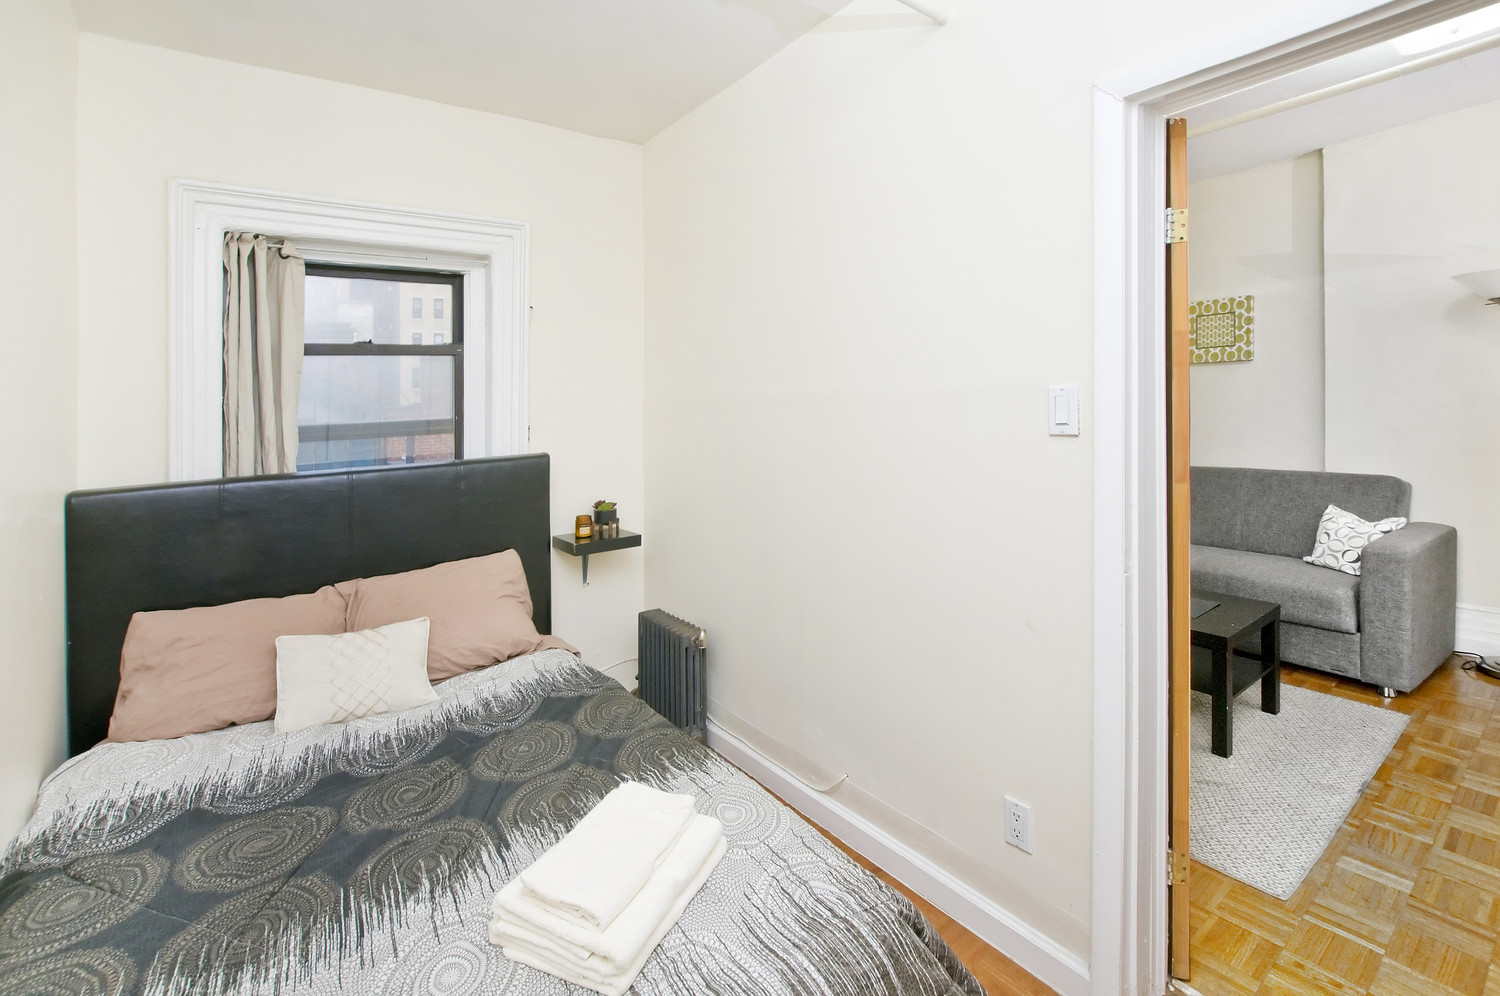 MURRAY HILL 1 BEDROOM APARTMENT FOR RENT    STUNNING 1 BEDROOM NEAR GRAND CENTRAL (E. 39TH ST AND LEXINGTON AVE)